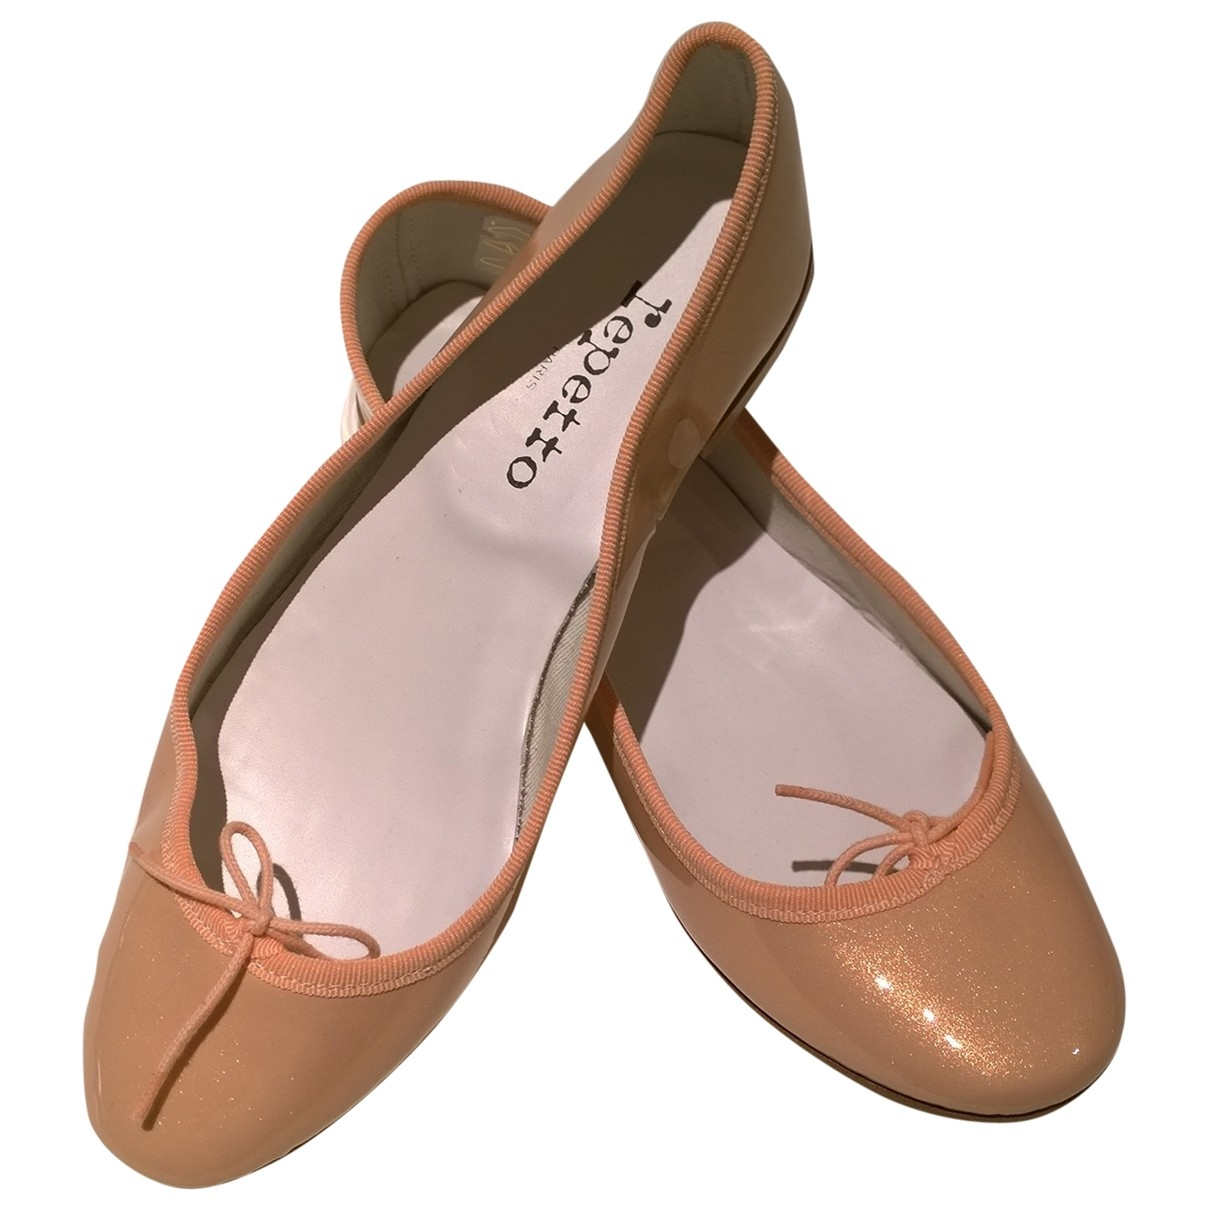 Repetto \N Pink Patent leather Ballet flats for Women 39 EU